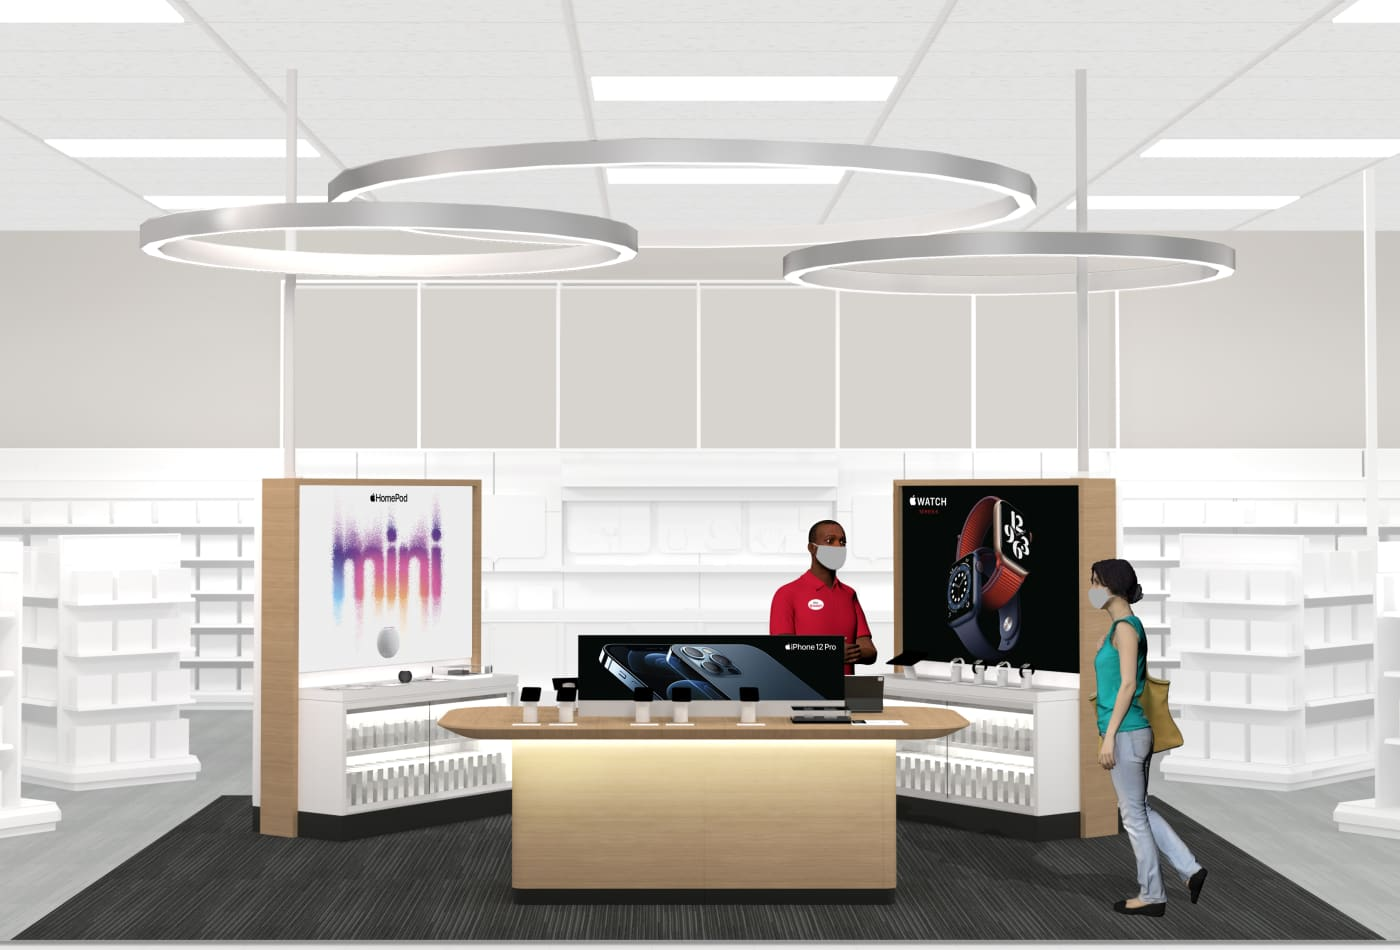 Target to open mini Apple shops inside 17 stores in latest move to woo customers